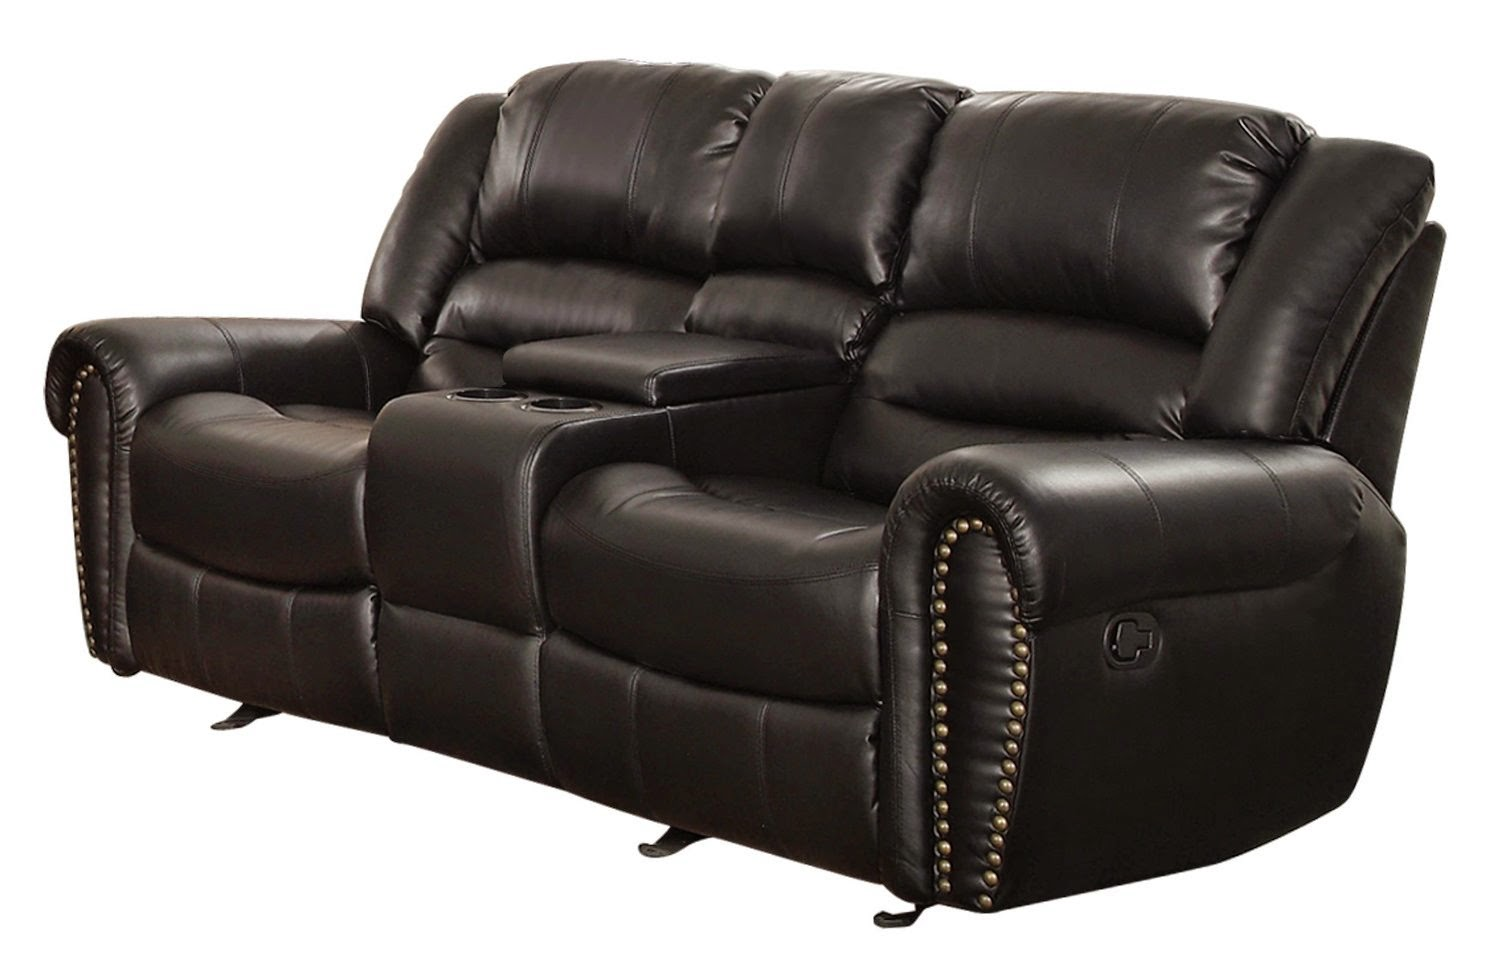 two seater sofa recliner american leather studio reviews black 2